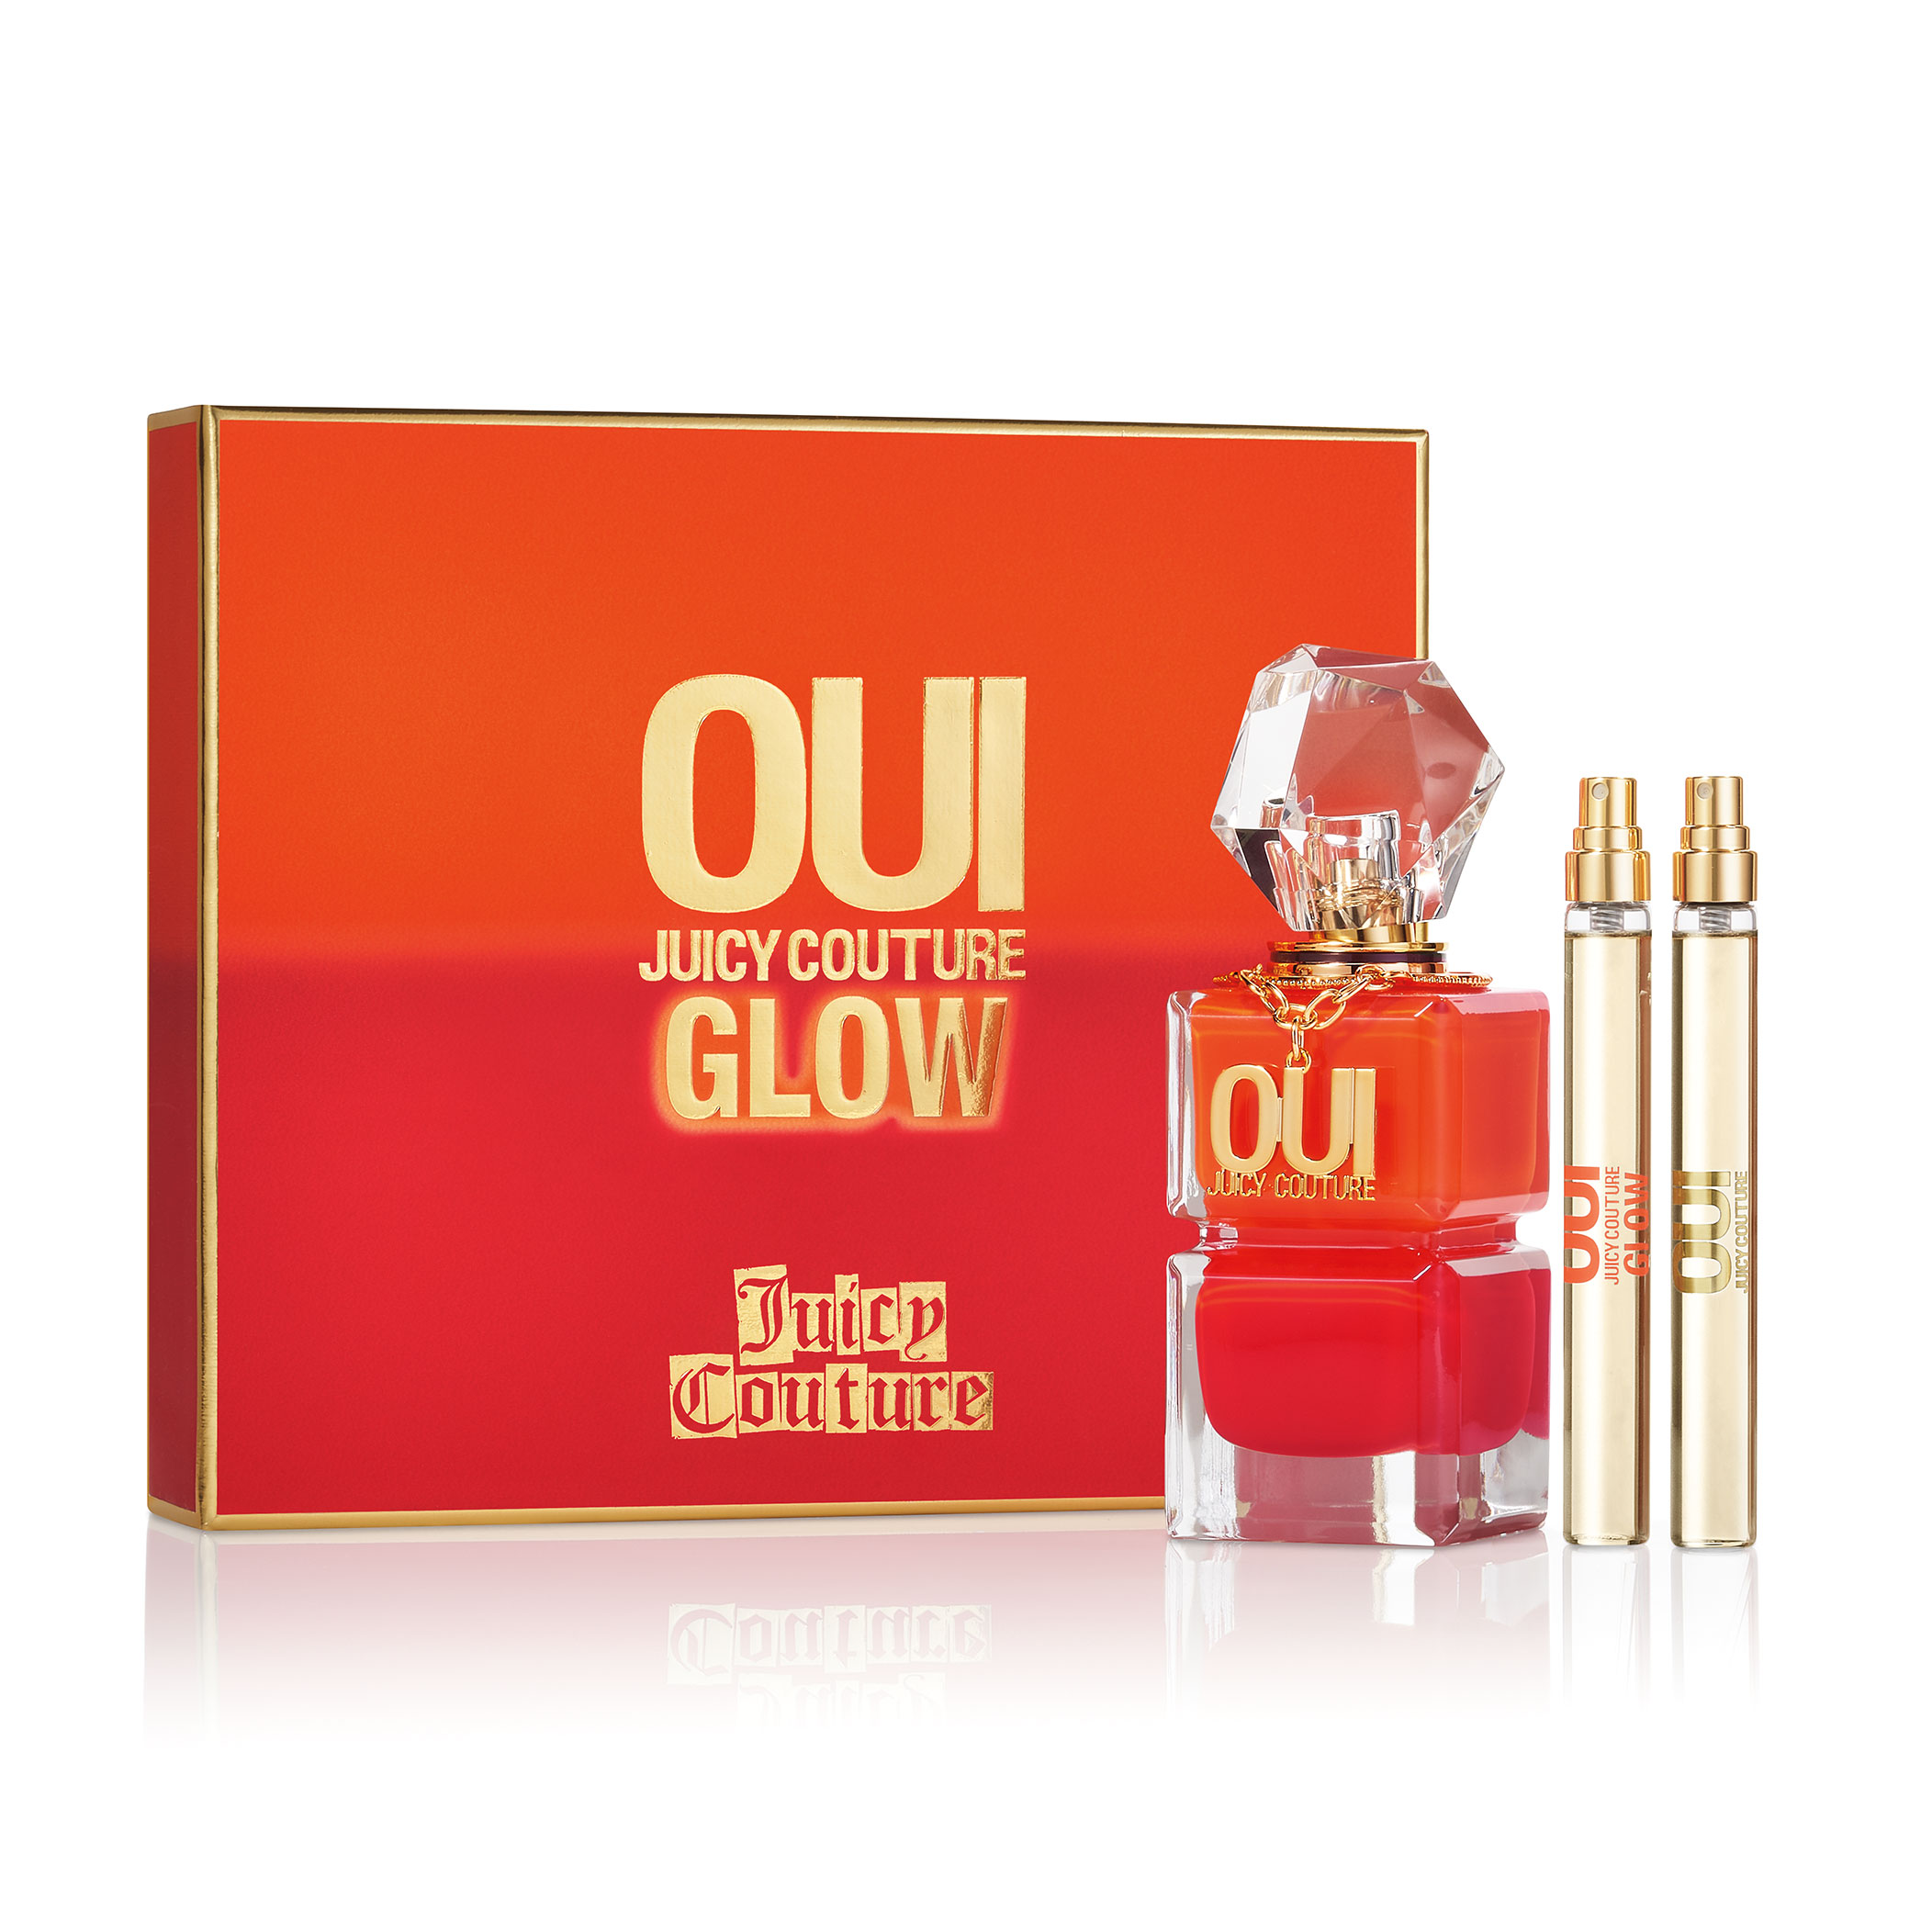 Oui Juicy Couture Glow 3-Piece Gift Set